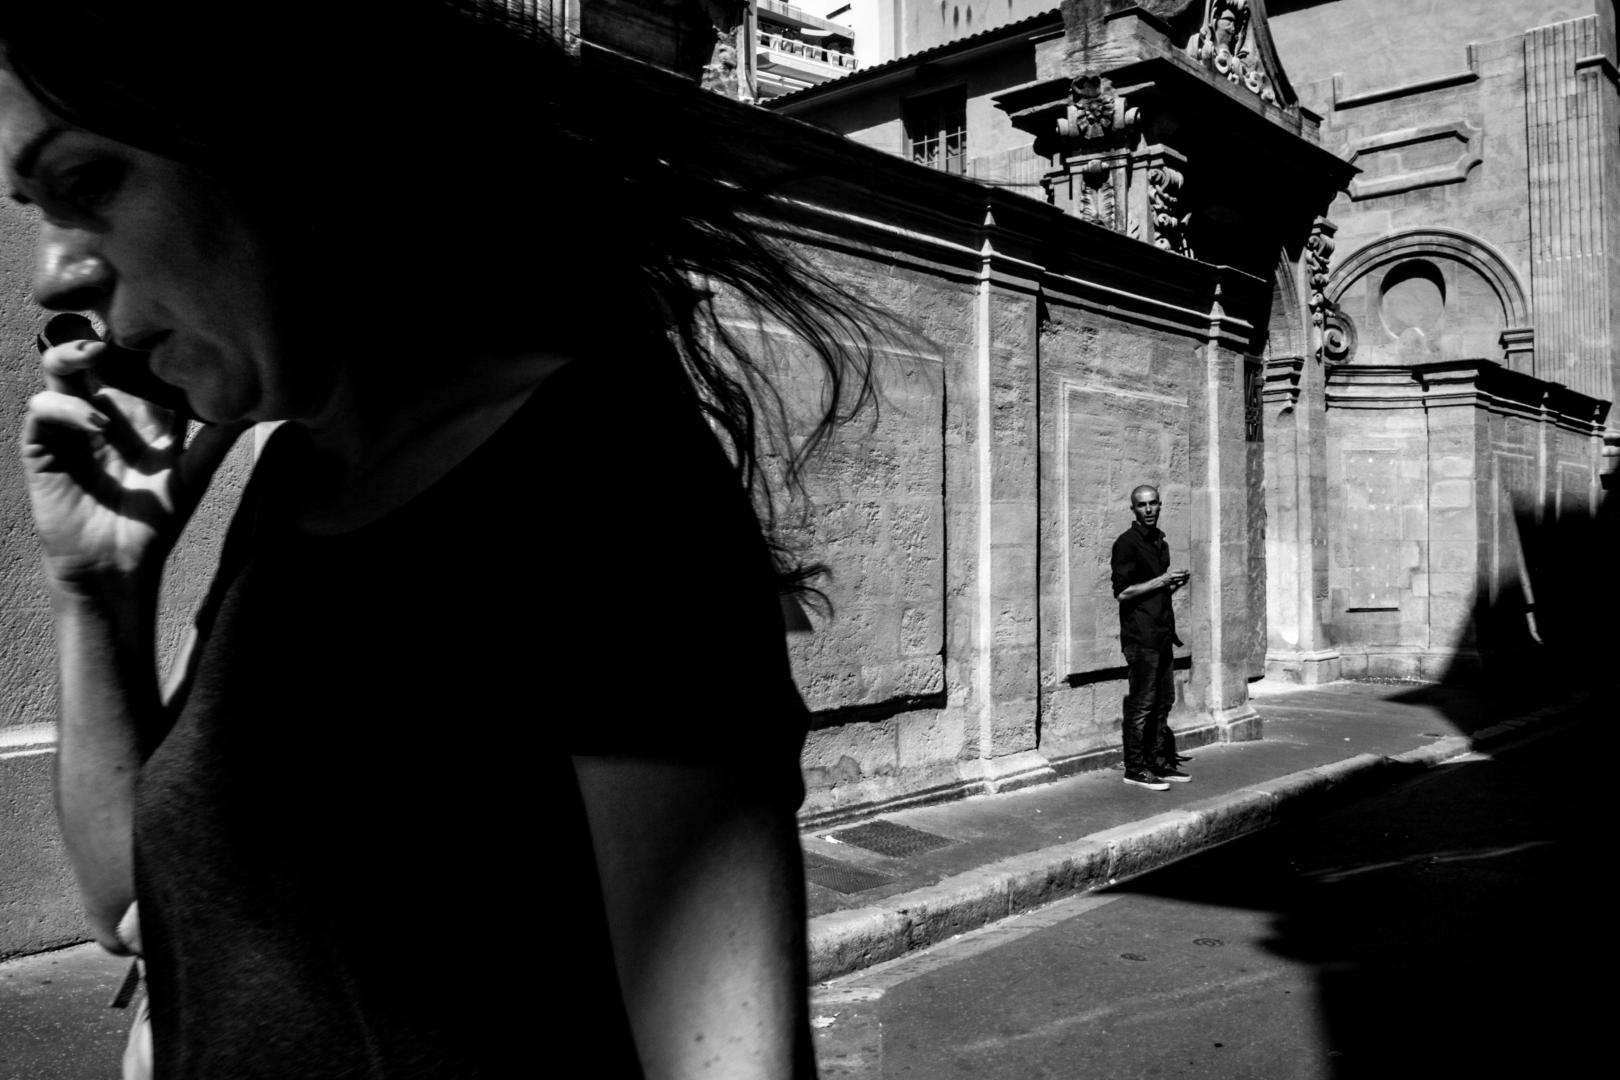 jeff-chane-mouye-street-photography-Aix-en-Provence-592